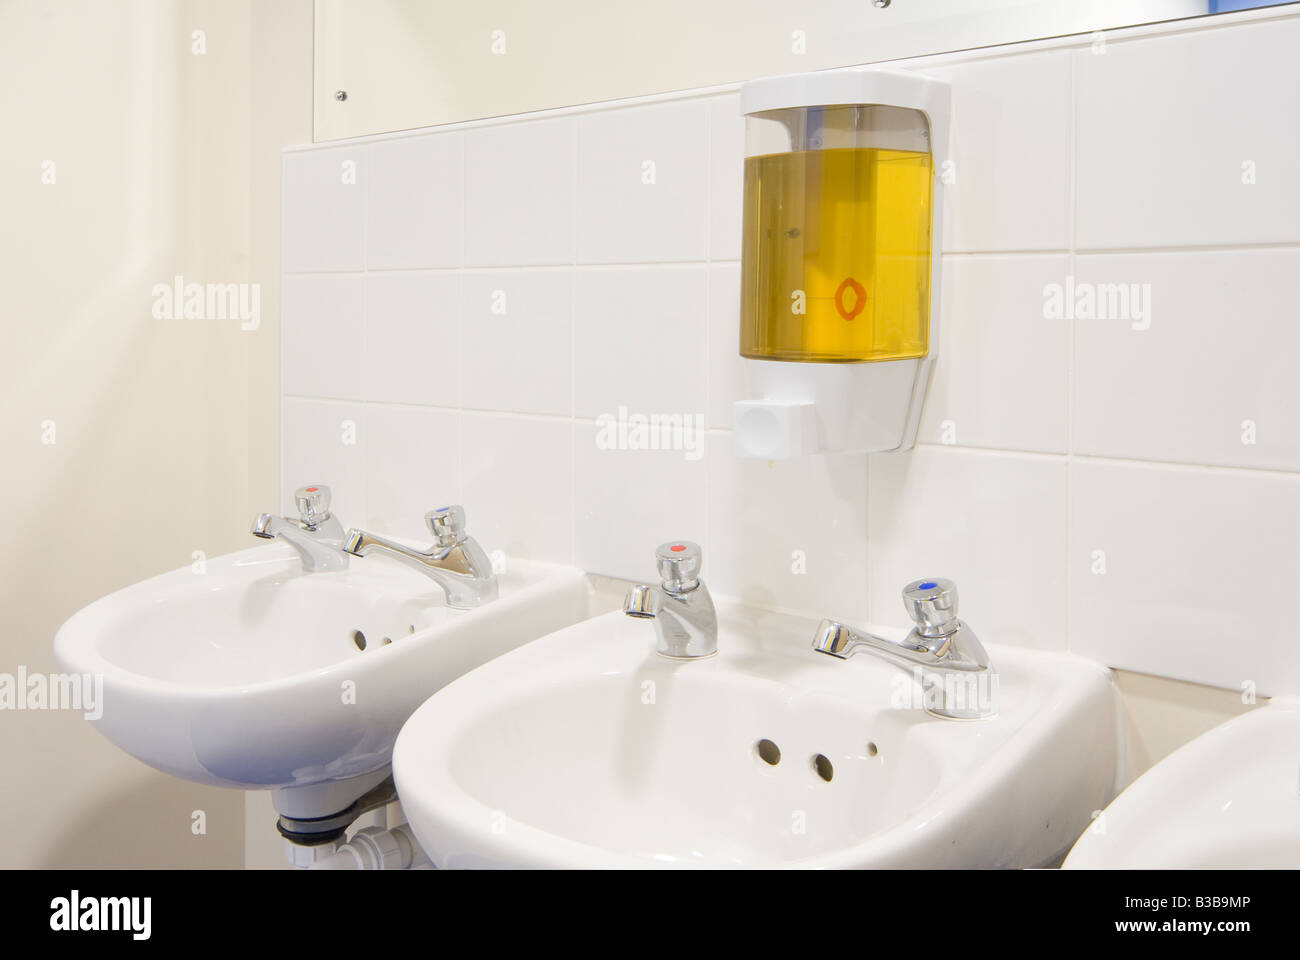 Office Toilet Sink Stock Photos & Office Toilet Sink Stock Images ...